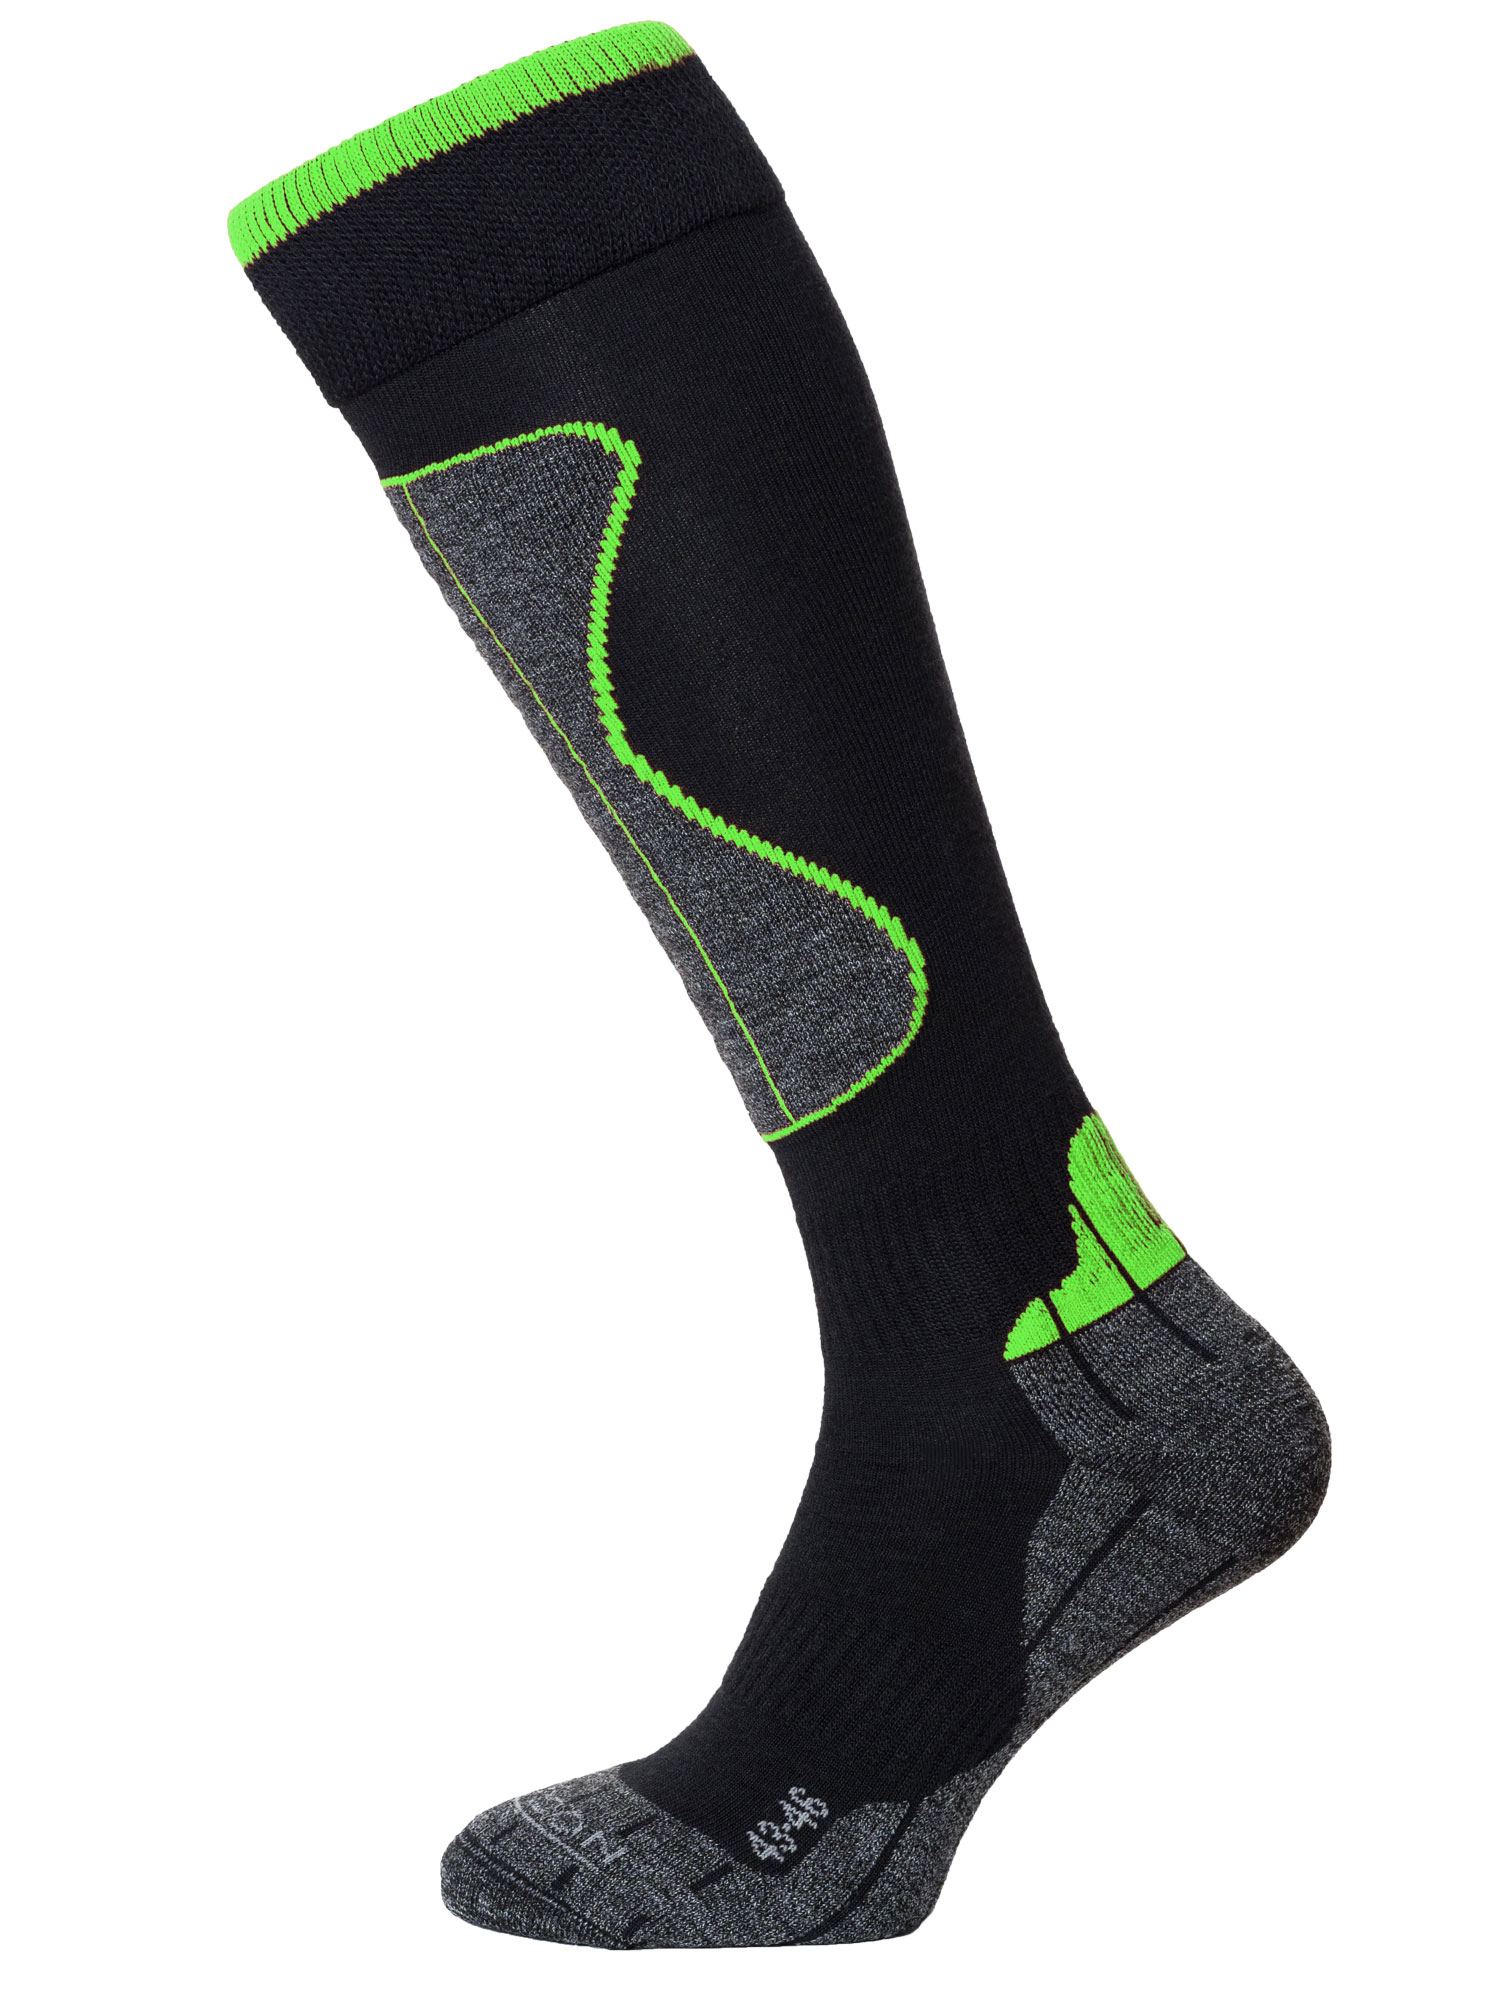 Winter Sport Technical Merino – Black / Green